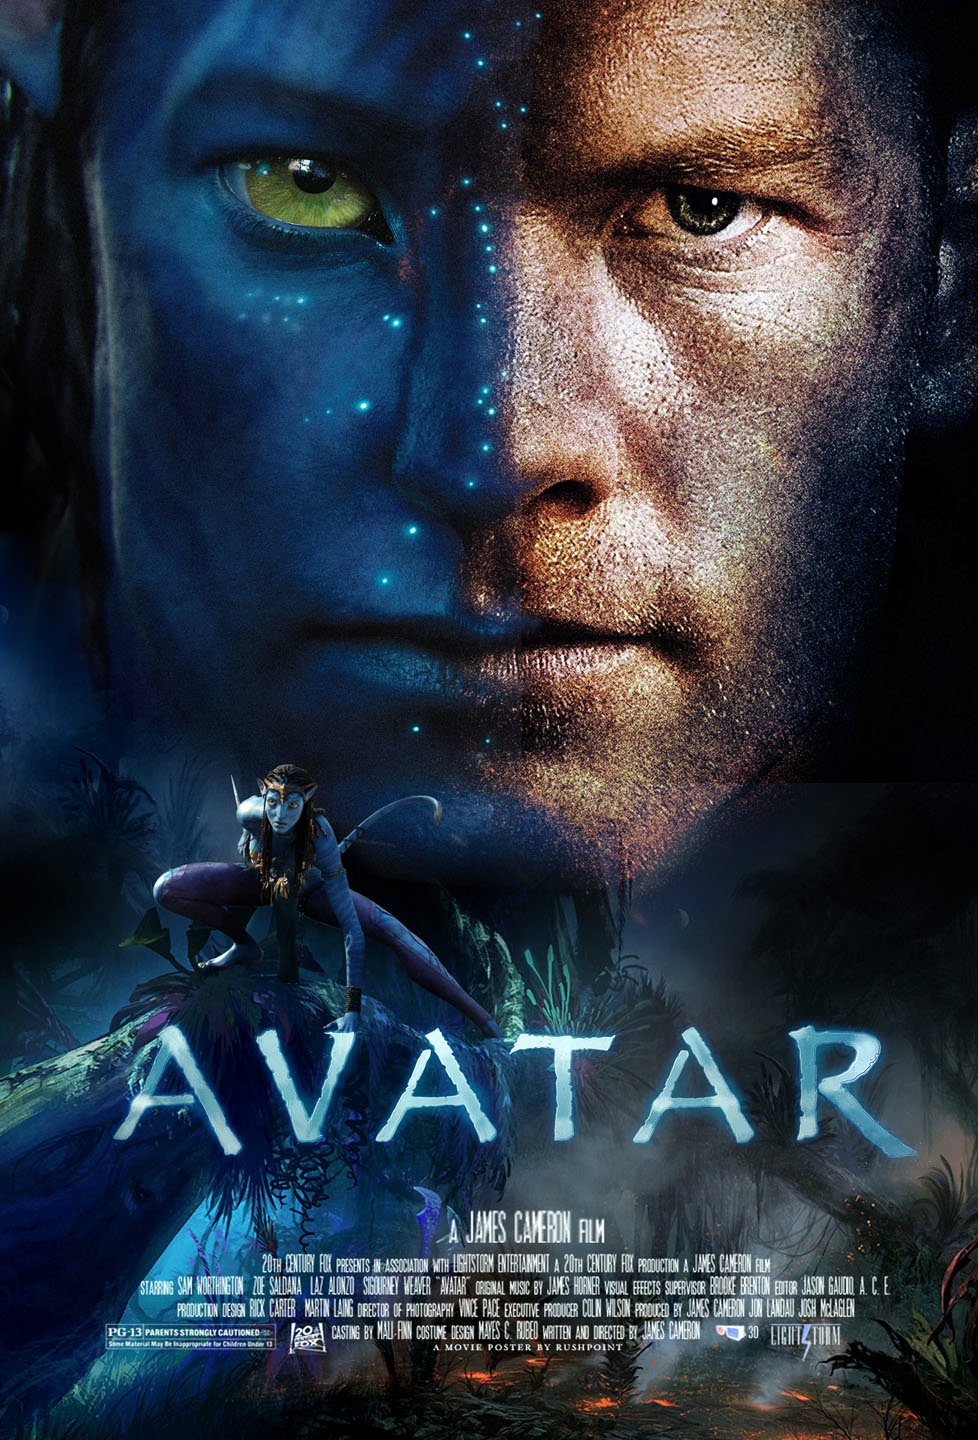 Avatar 2009 extended bluray 720p mkv free mediafire english movie